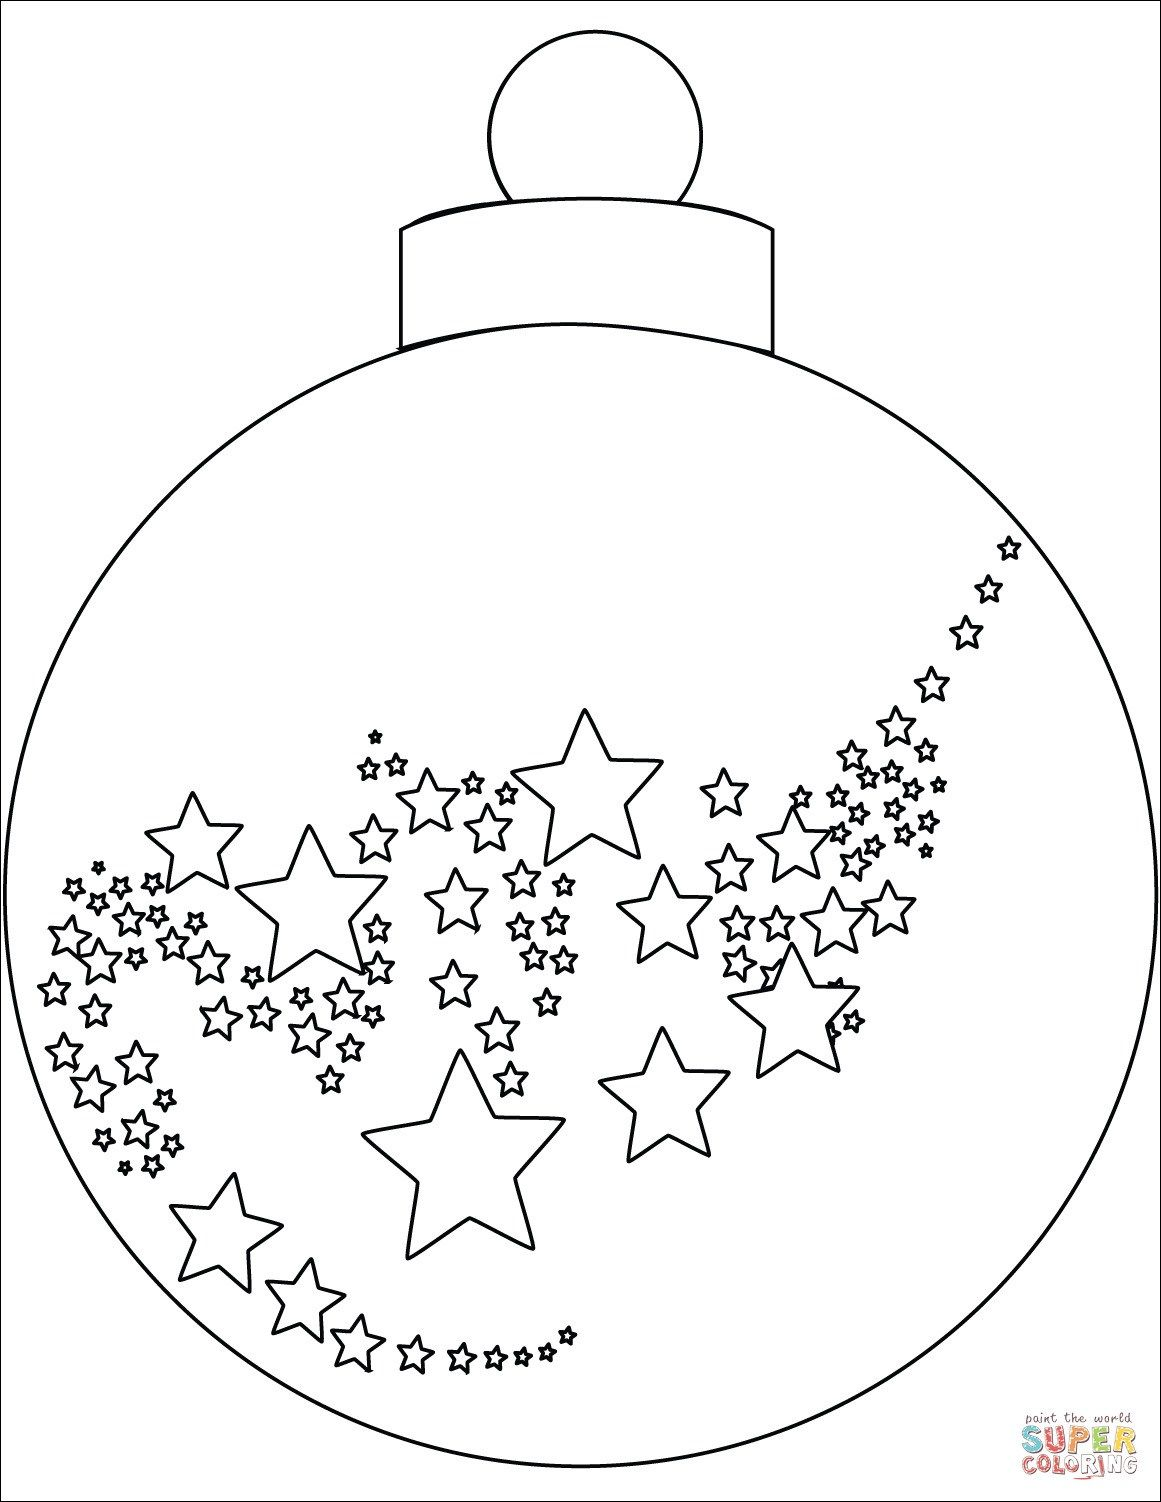 Christmas Ornament Colouring Pages Viralinspirations Printable Christmas Coloring Pages Christmas Ornament Coloring Page Free Printable Coloring Pages